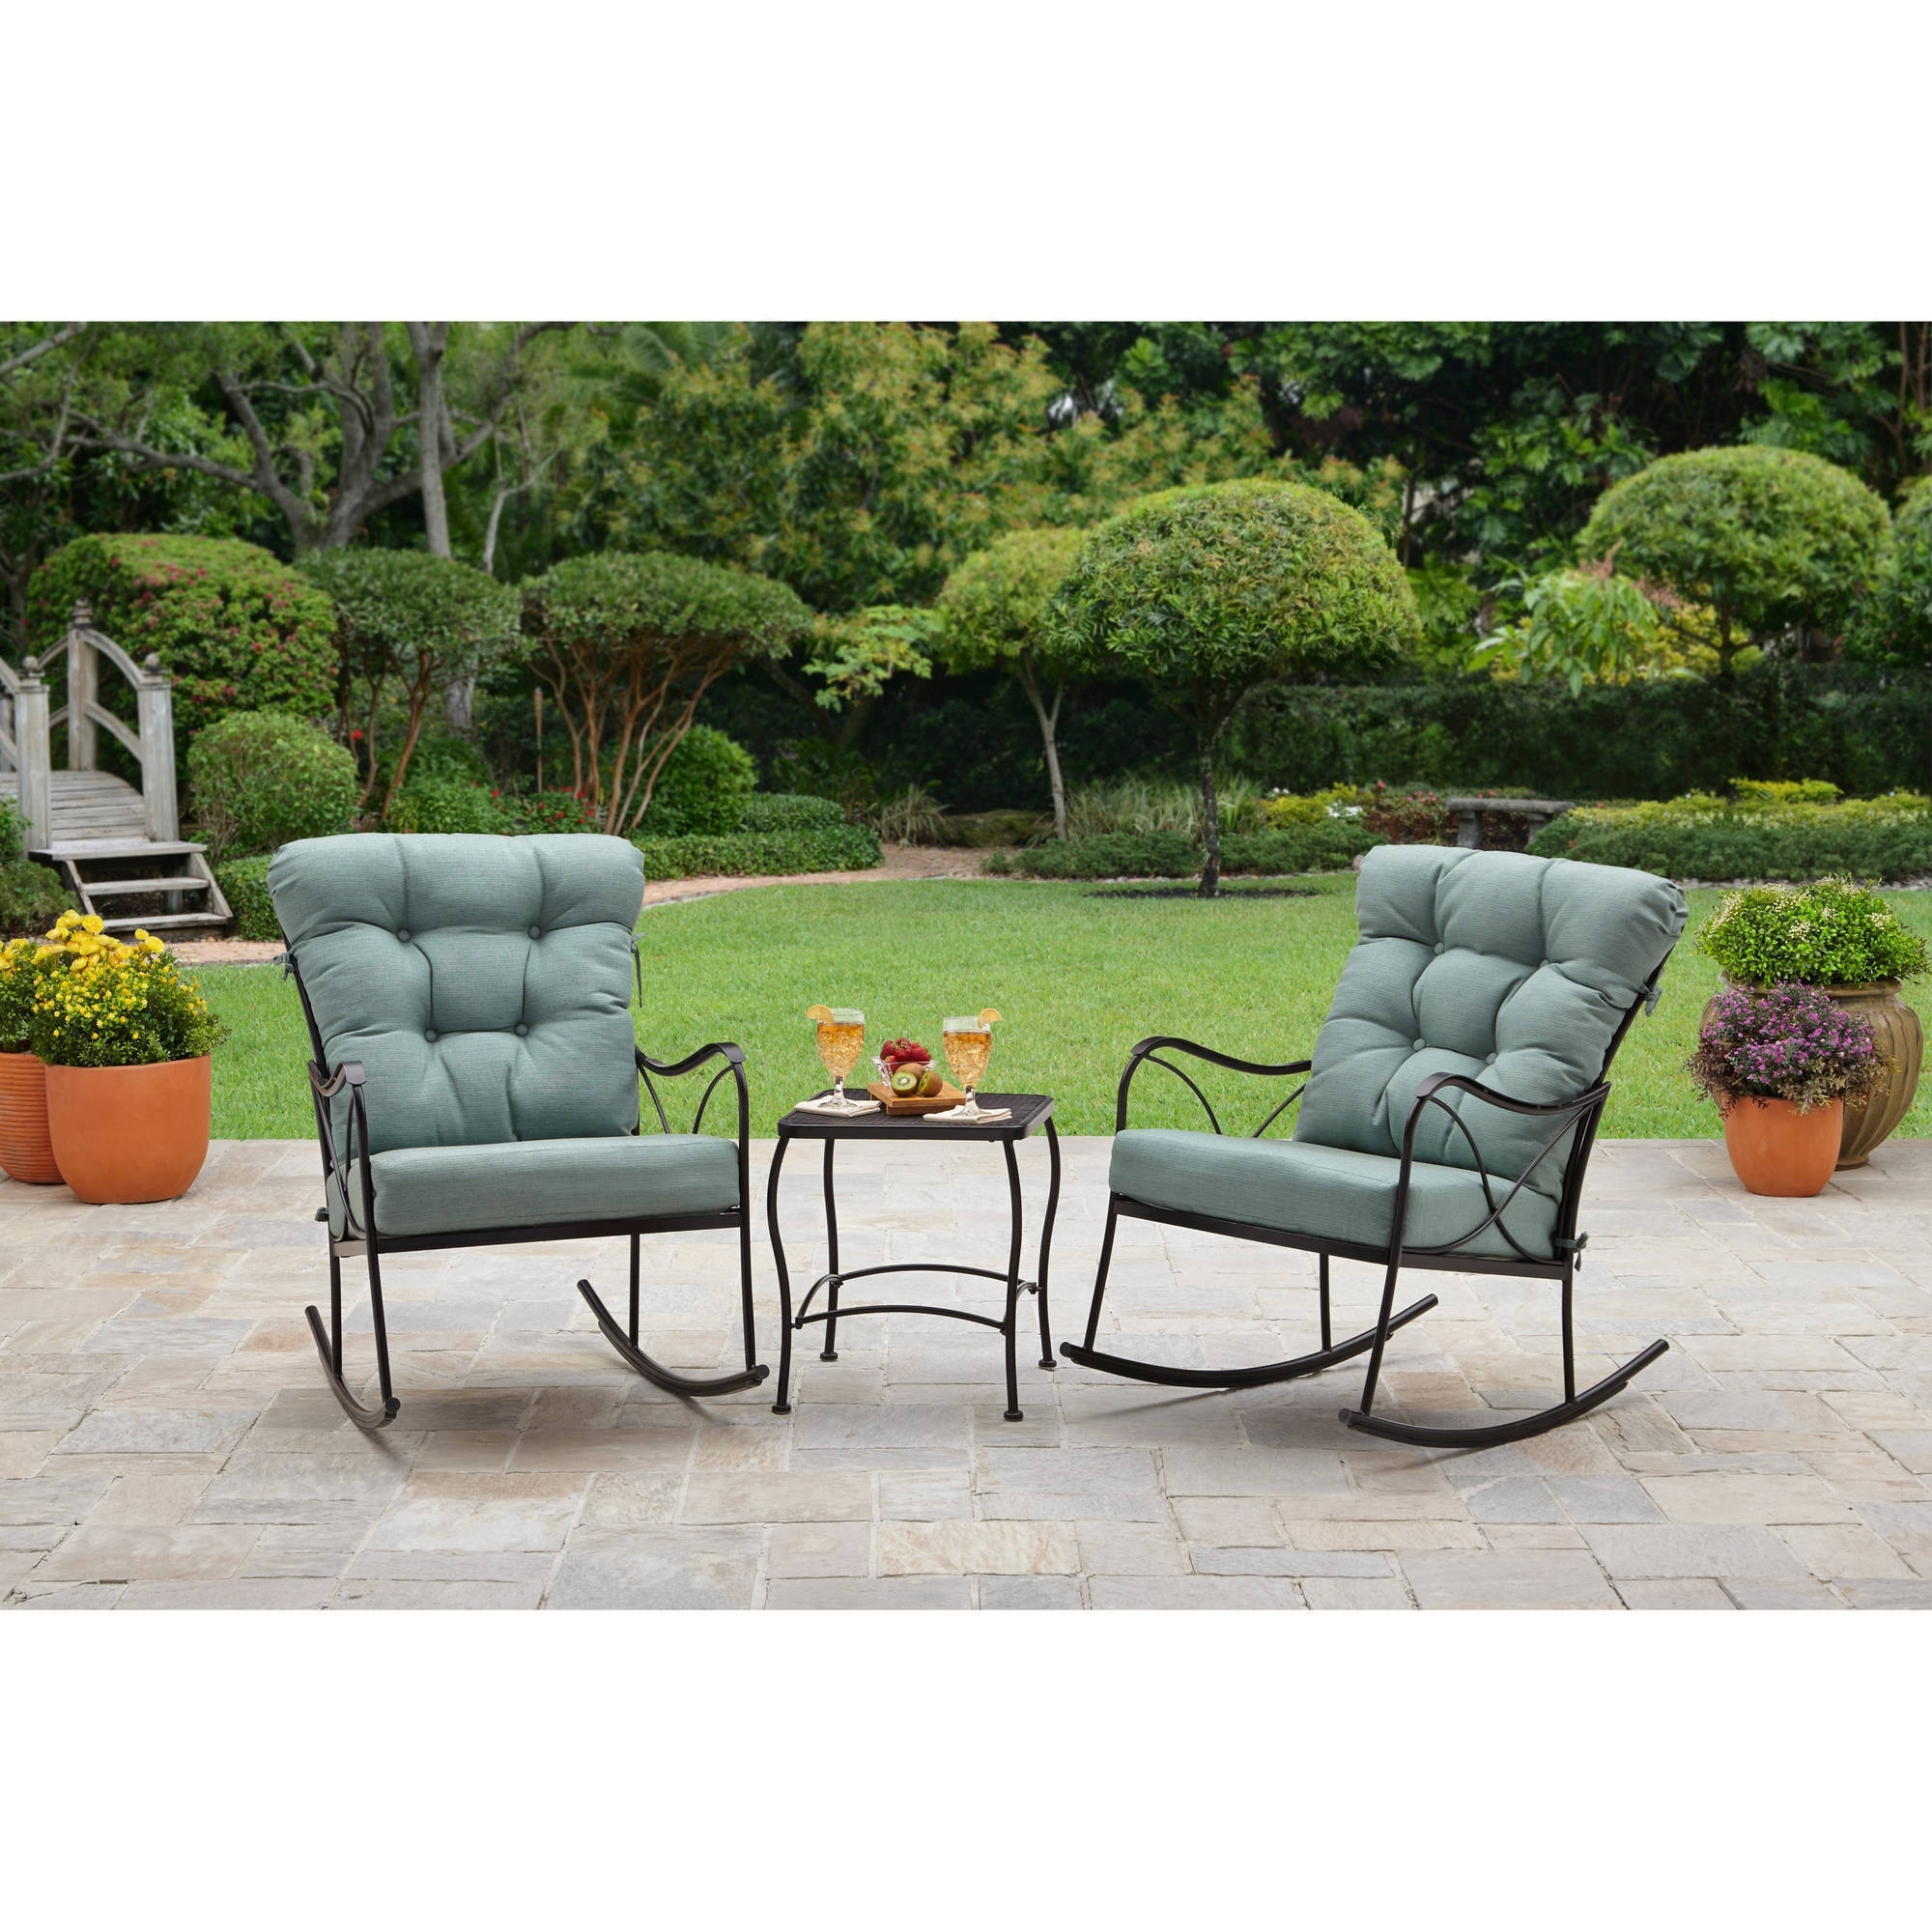 Used Patio Rocking Chairs Pertaining To Most Popular Better Homes And Gardens Seacliff Patio Furniture Collection (Gallery 11 of 20)